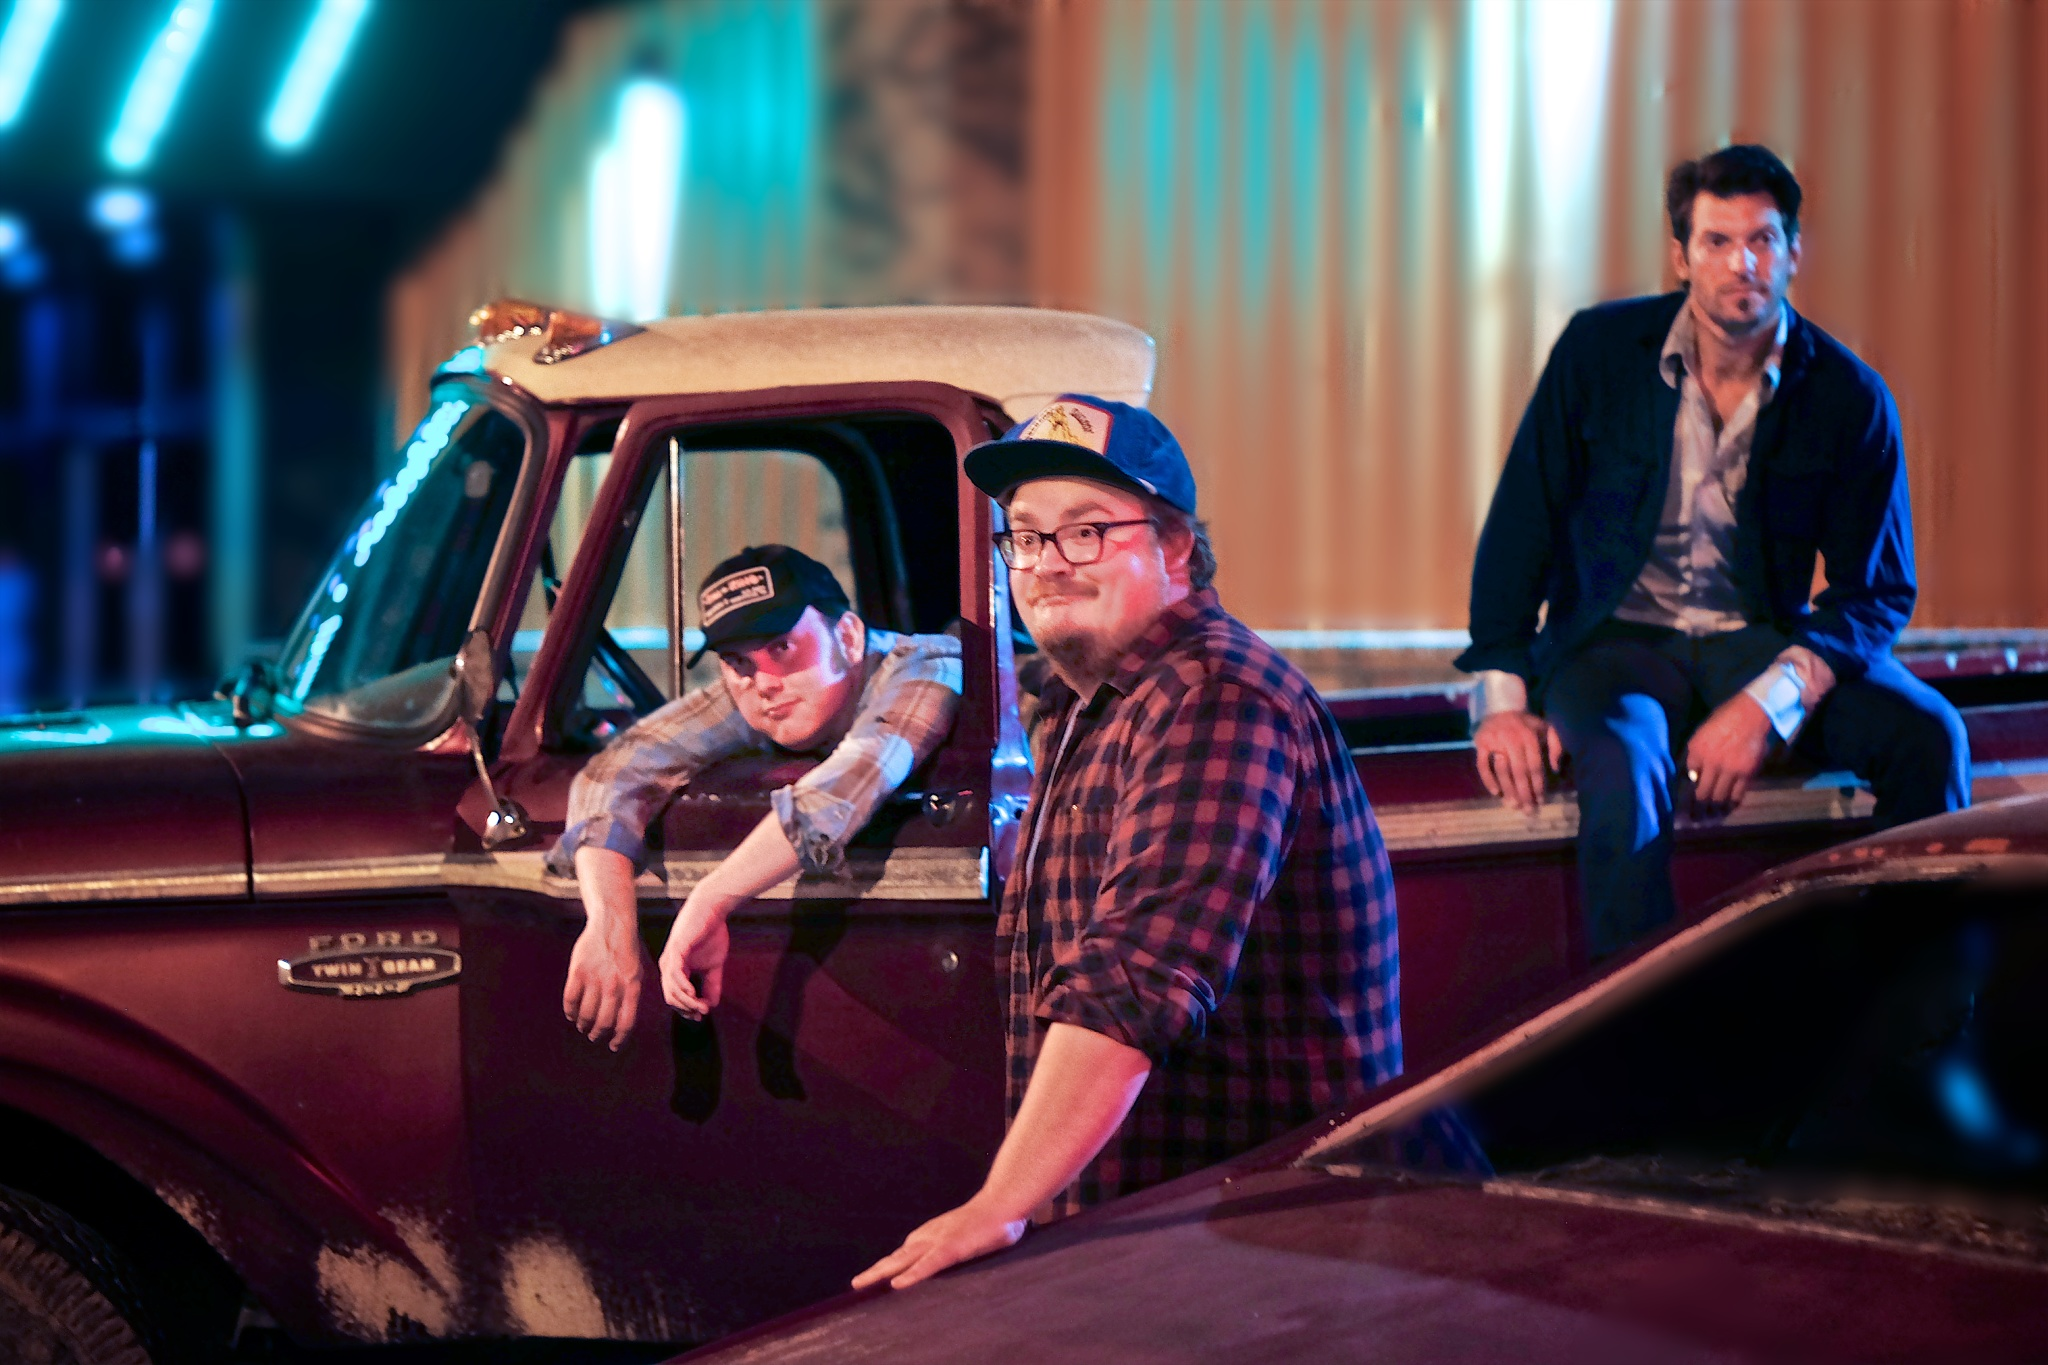 Nick Brennan, Lance Salsgiver & Vance McCarty posing with the 1965 Ford used in the music video Buck Naked (also used in the hit film Percy Jackson & The Lightning Thief)